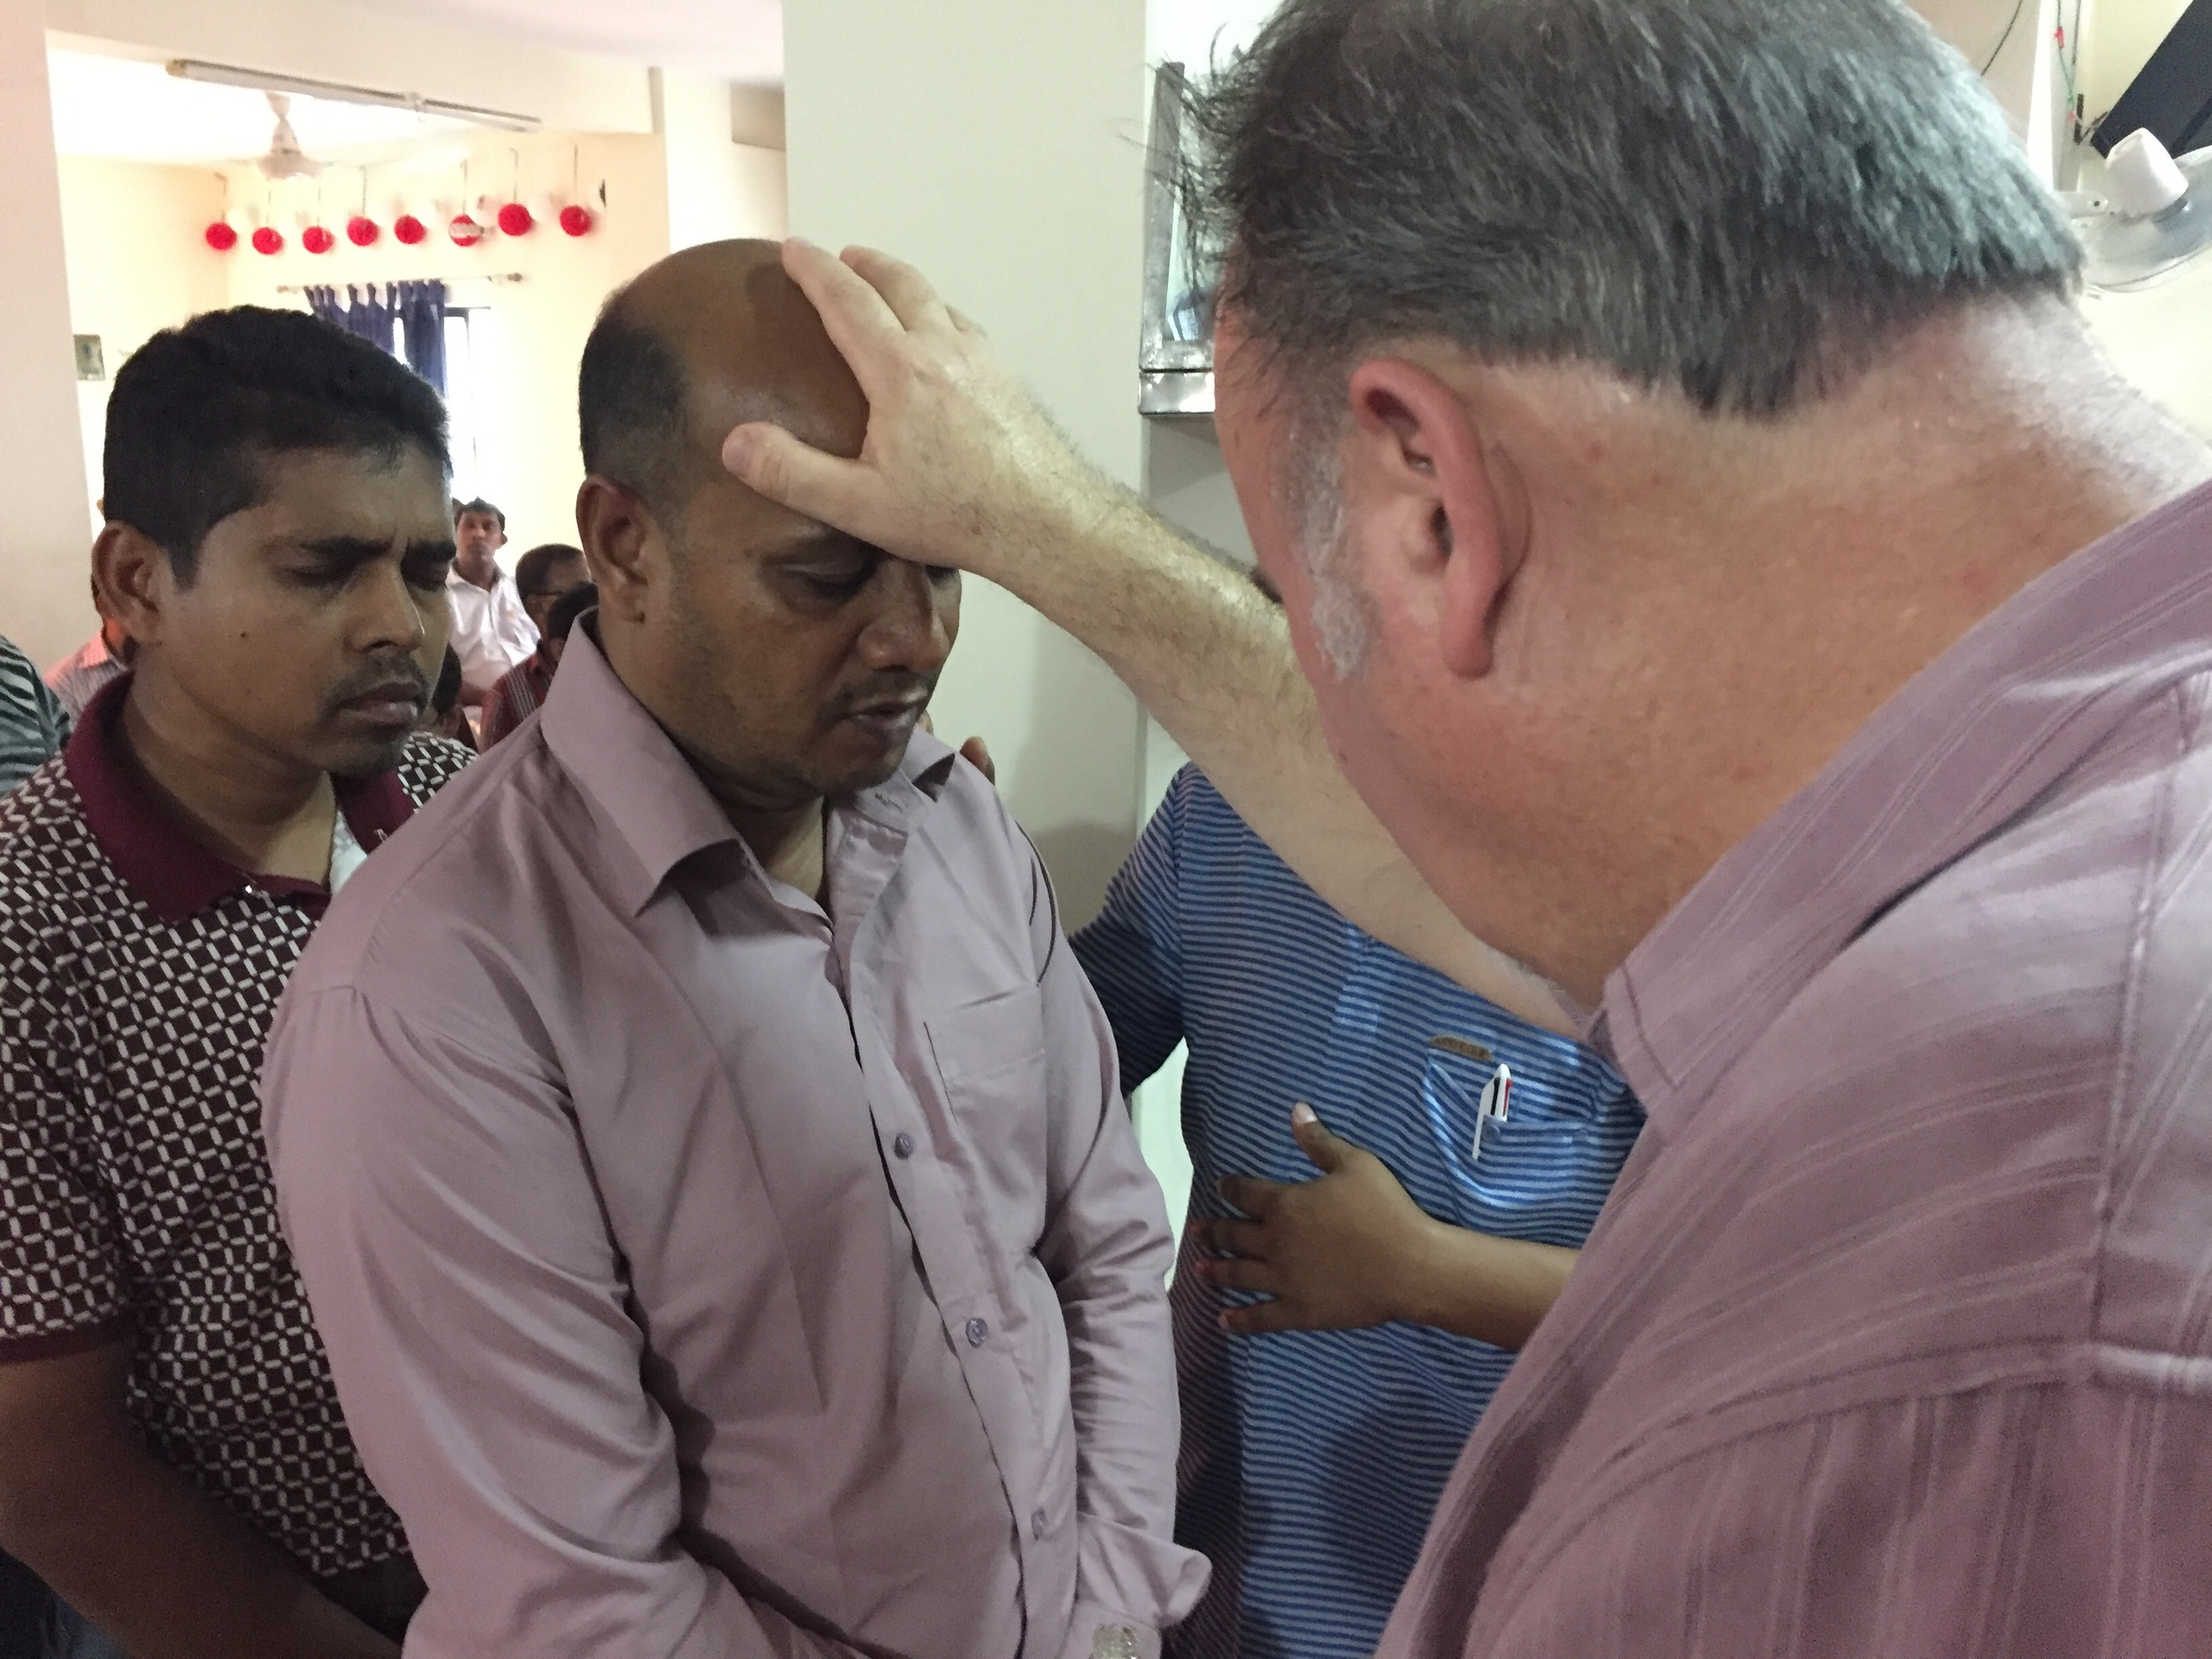 Mike prays with some on-fire Igniters from all over Bangladesh.